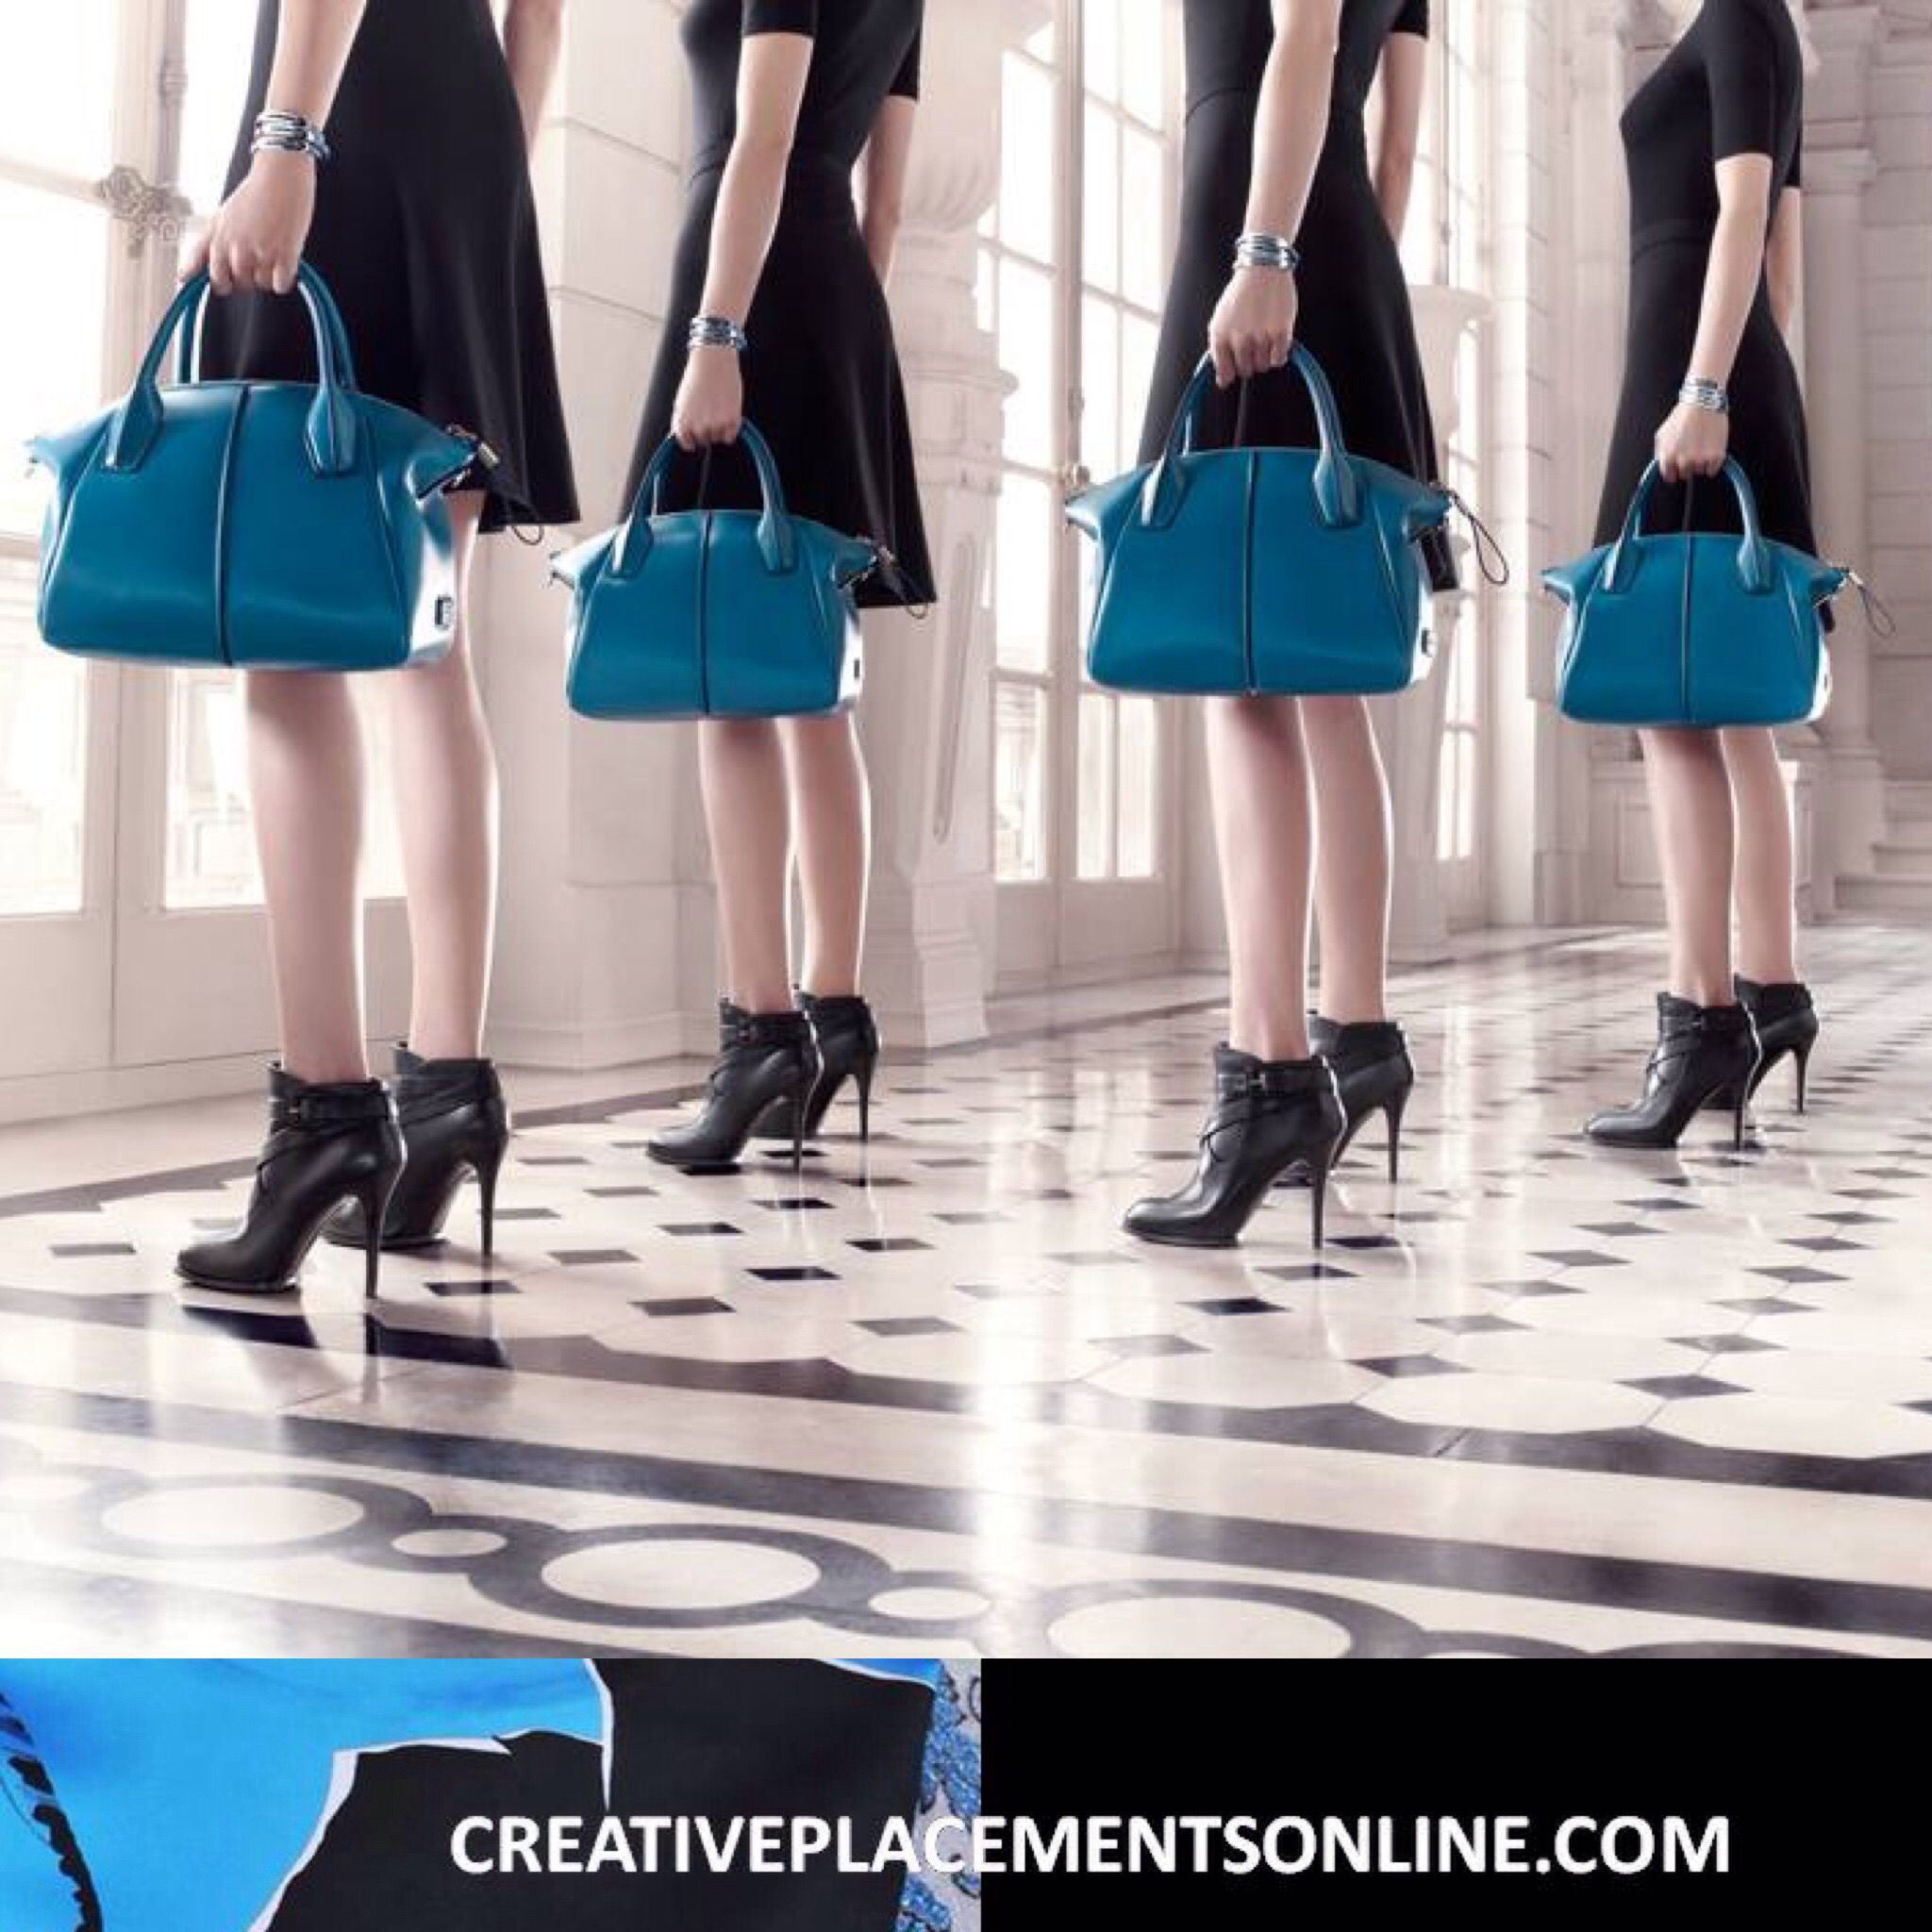 Recruitment agencies for fashion industry 92